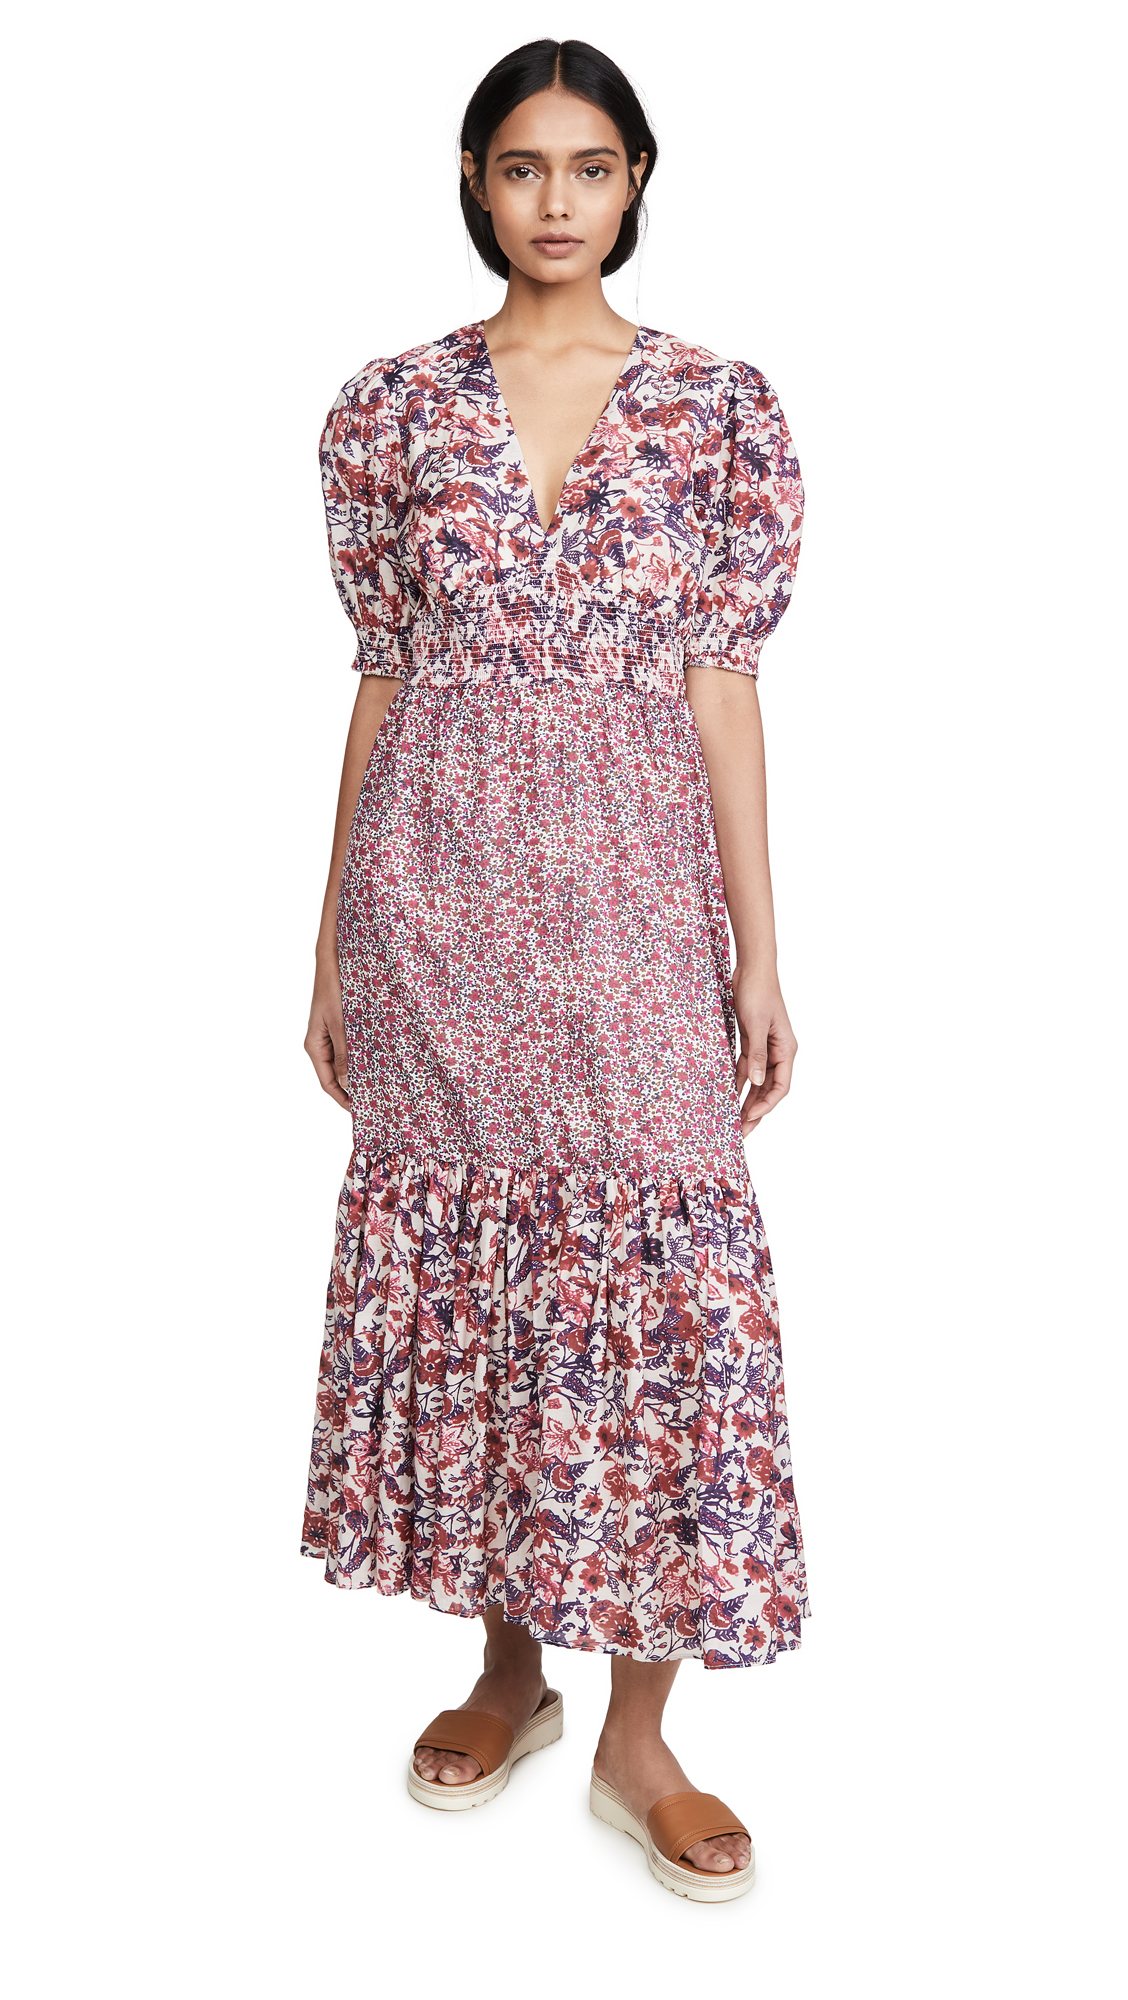 Saylor Elizabeth Dress - 60% Off Sale